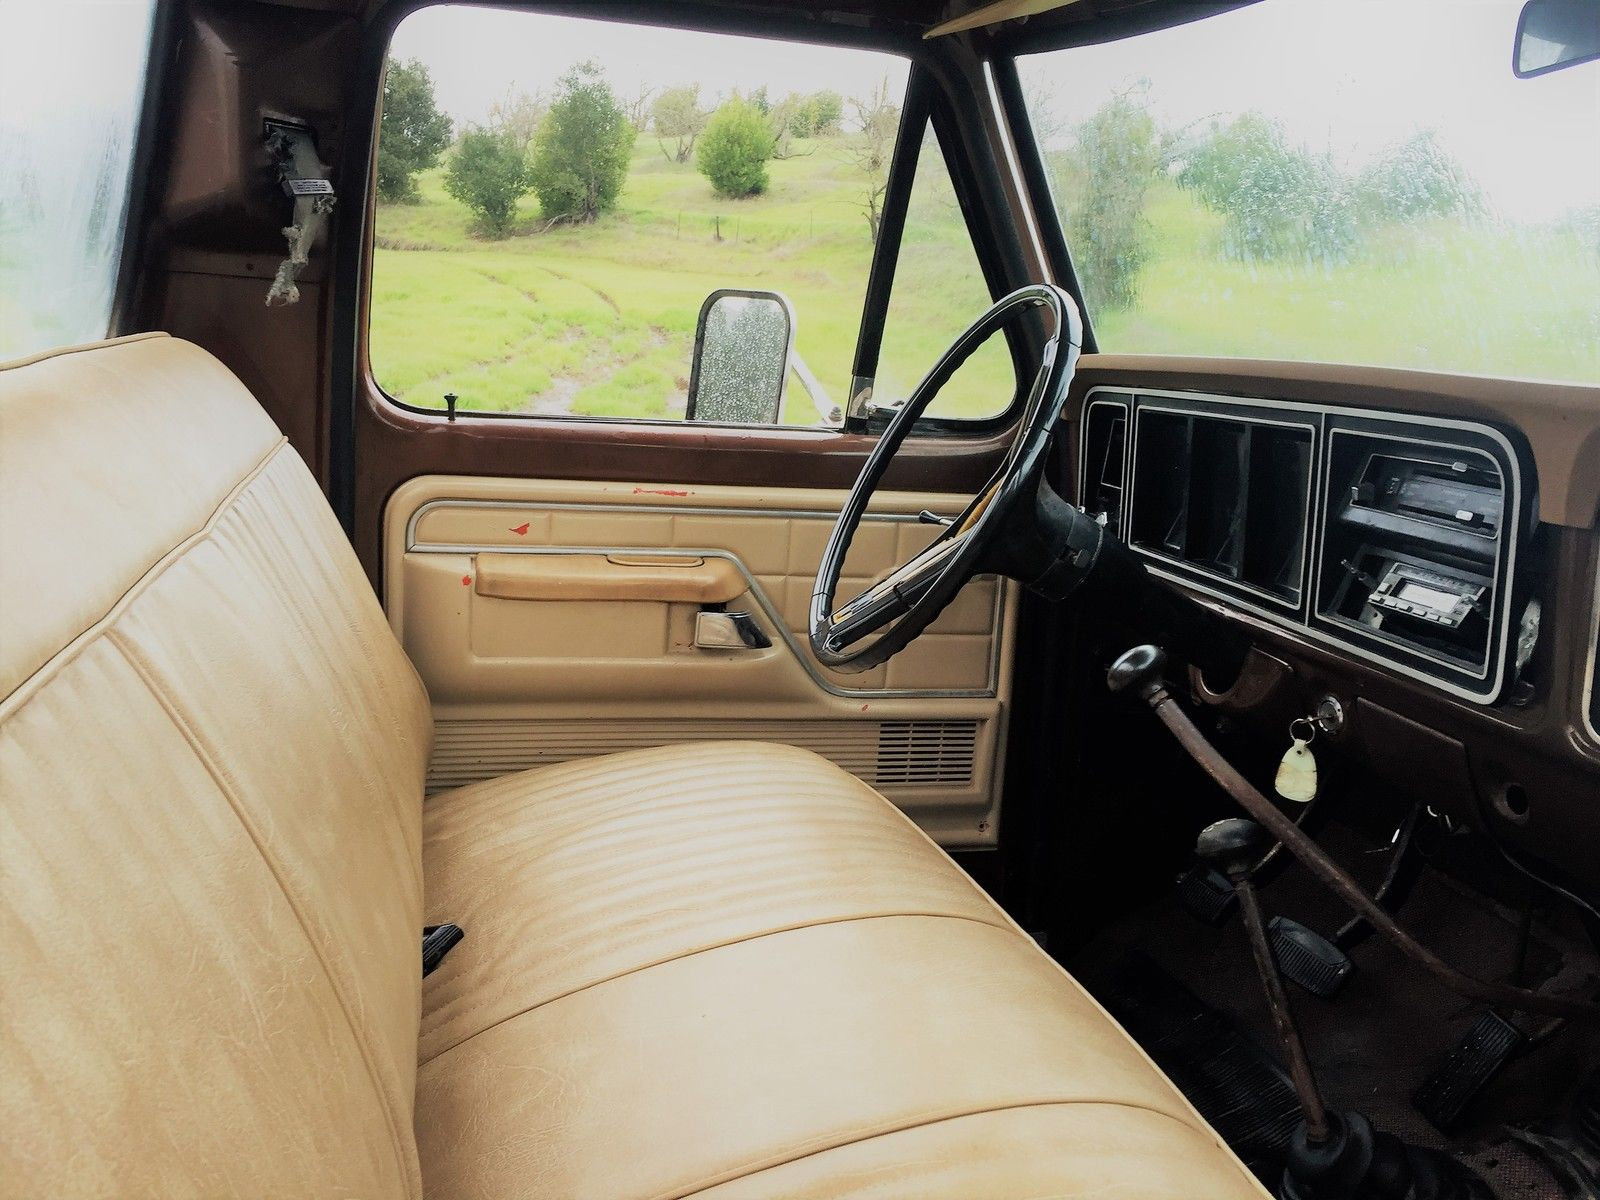 Daily Turismo What Can Brown Do 1976 Ford F 250 Highboy Ranger 1969 4x4 On The Other End Of That Ski Pole Sized Shifter Is A 4 Speed Manual Gearbox Hooked Up To 360 Cubic Inch Fe V8 Power Heads Dana 44 Axles Front And